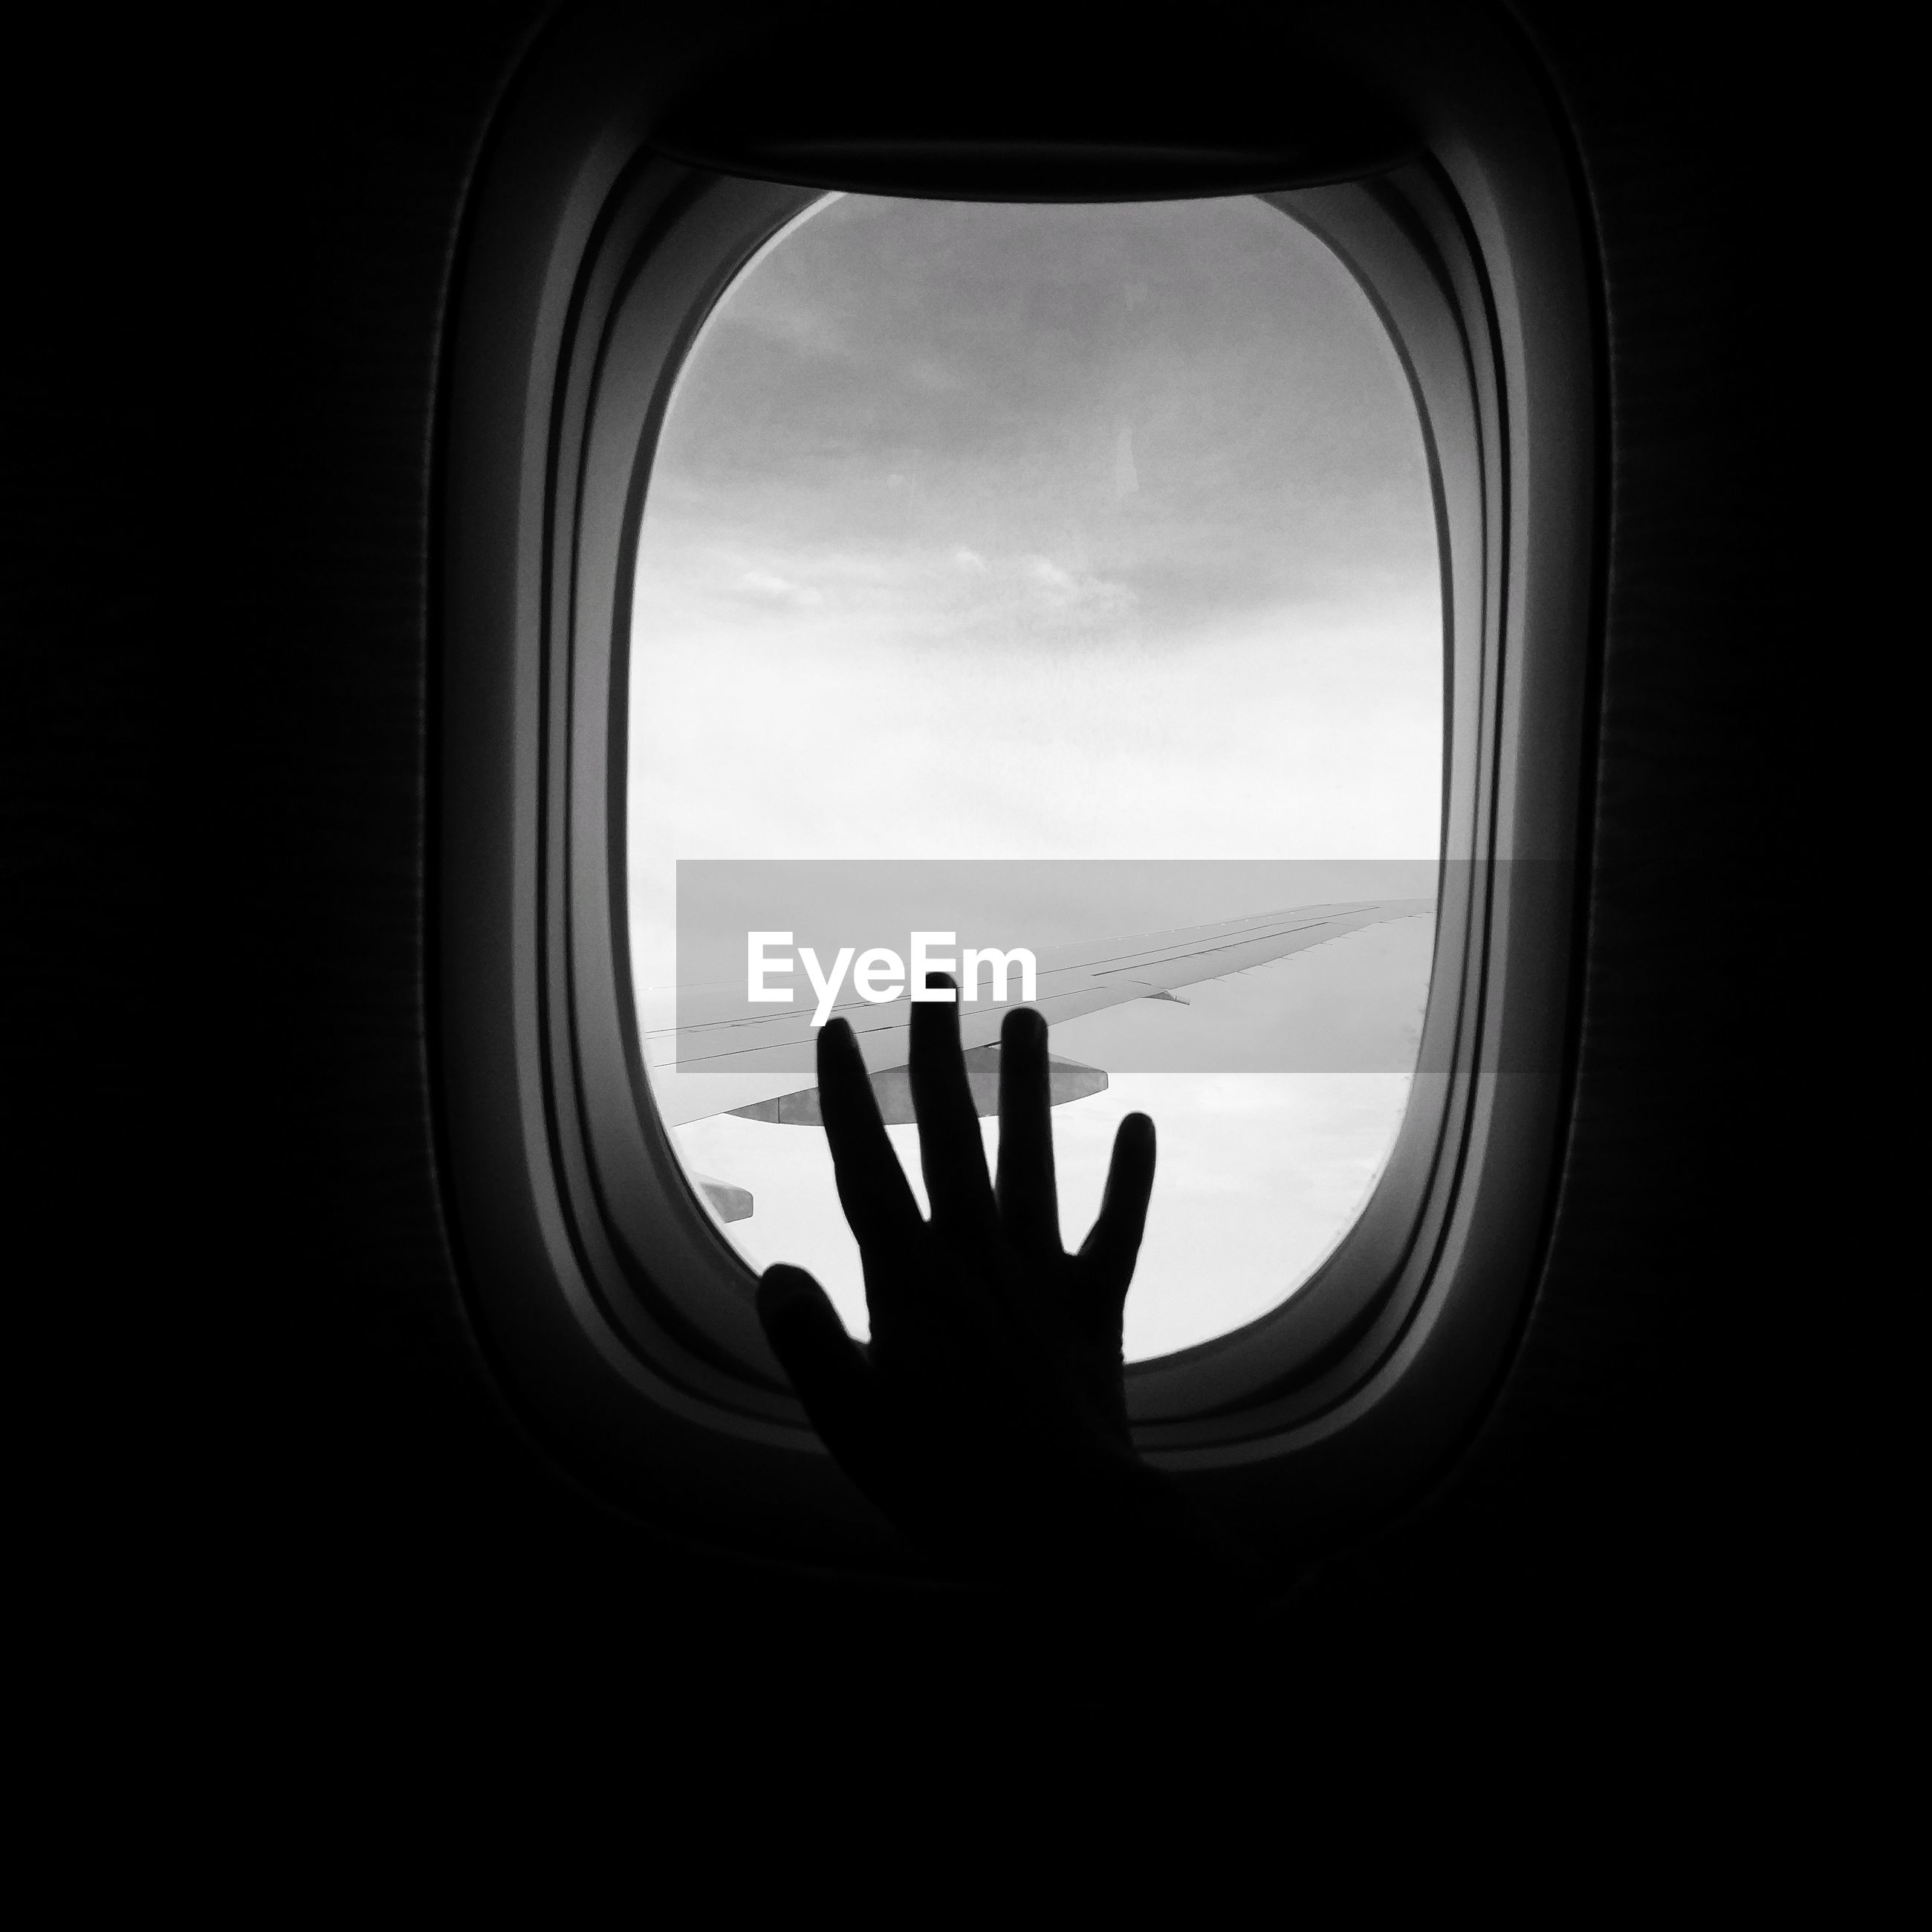 Silhouette hand of person on airplane window